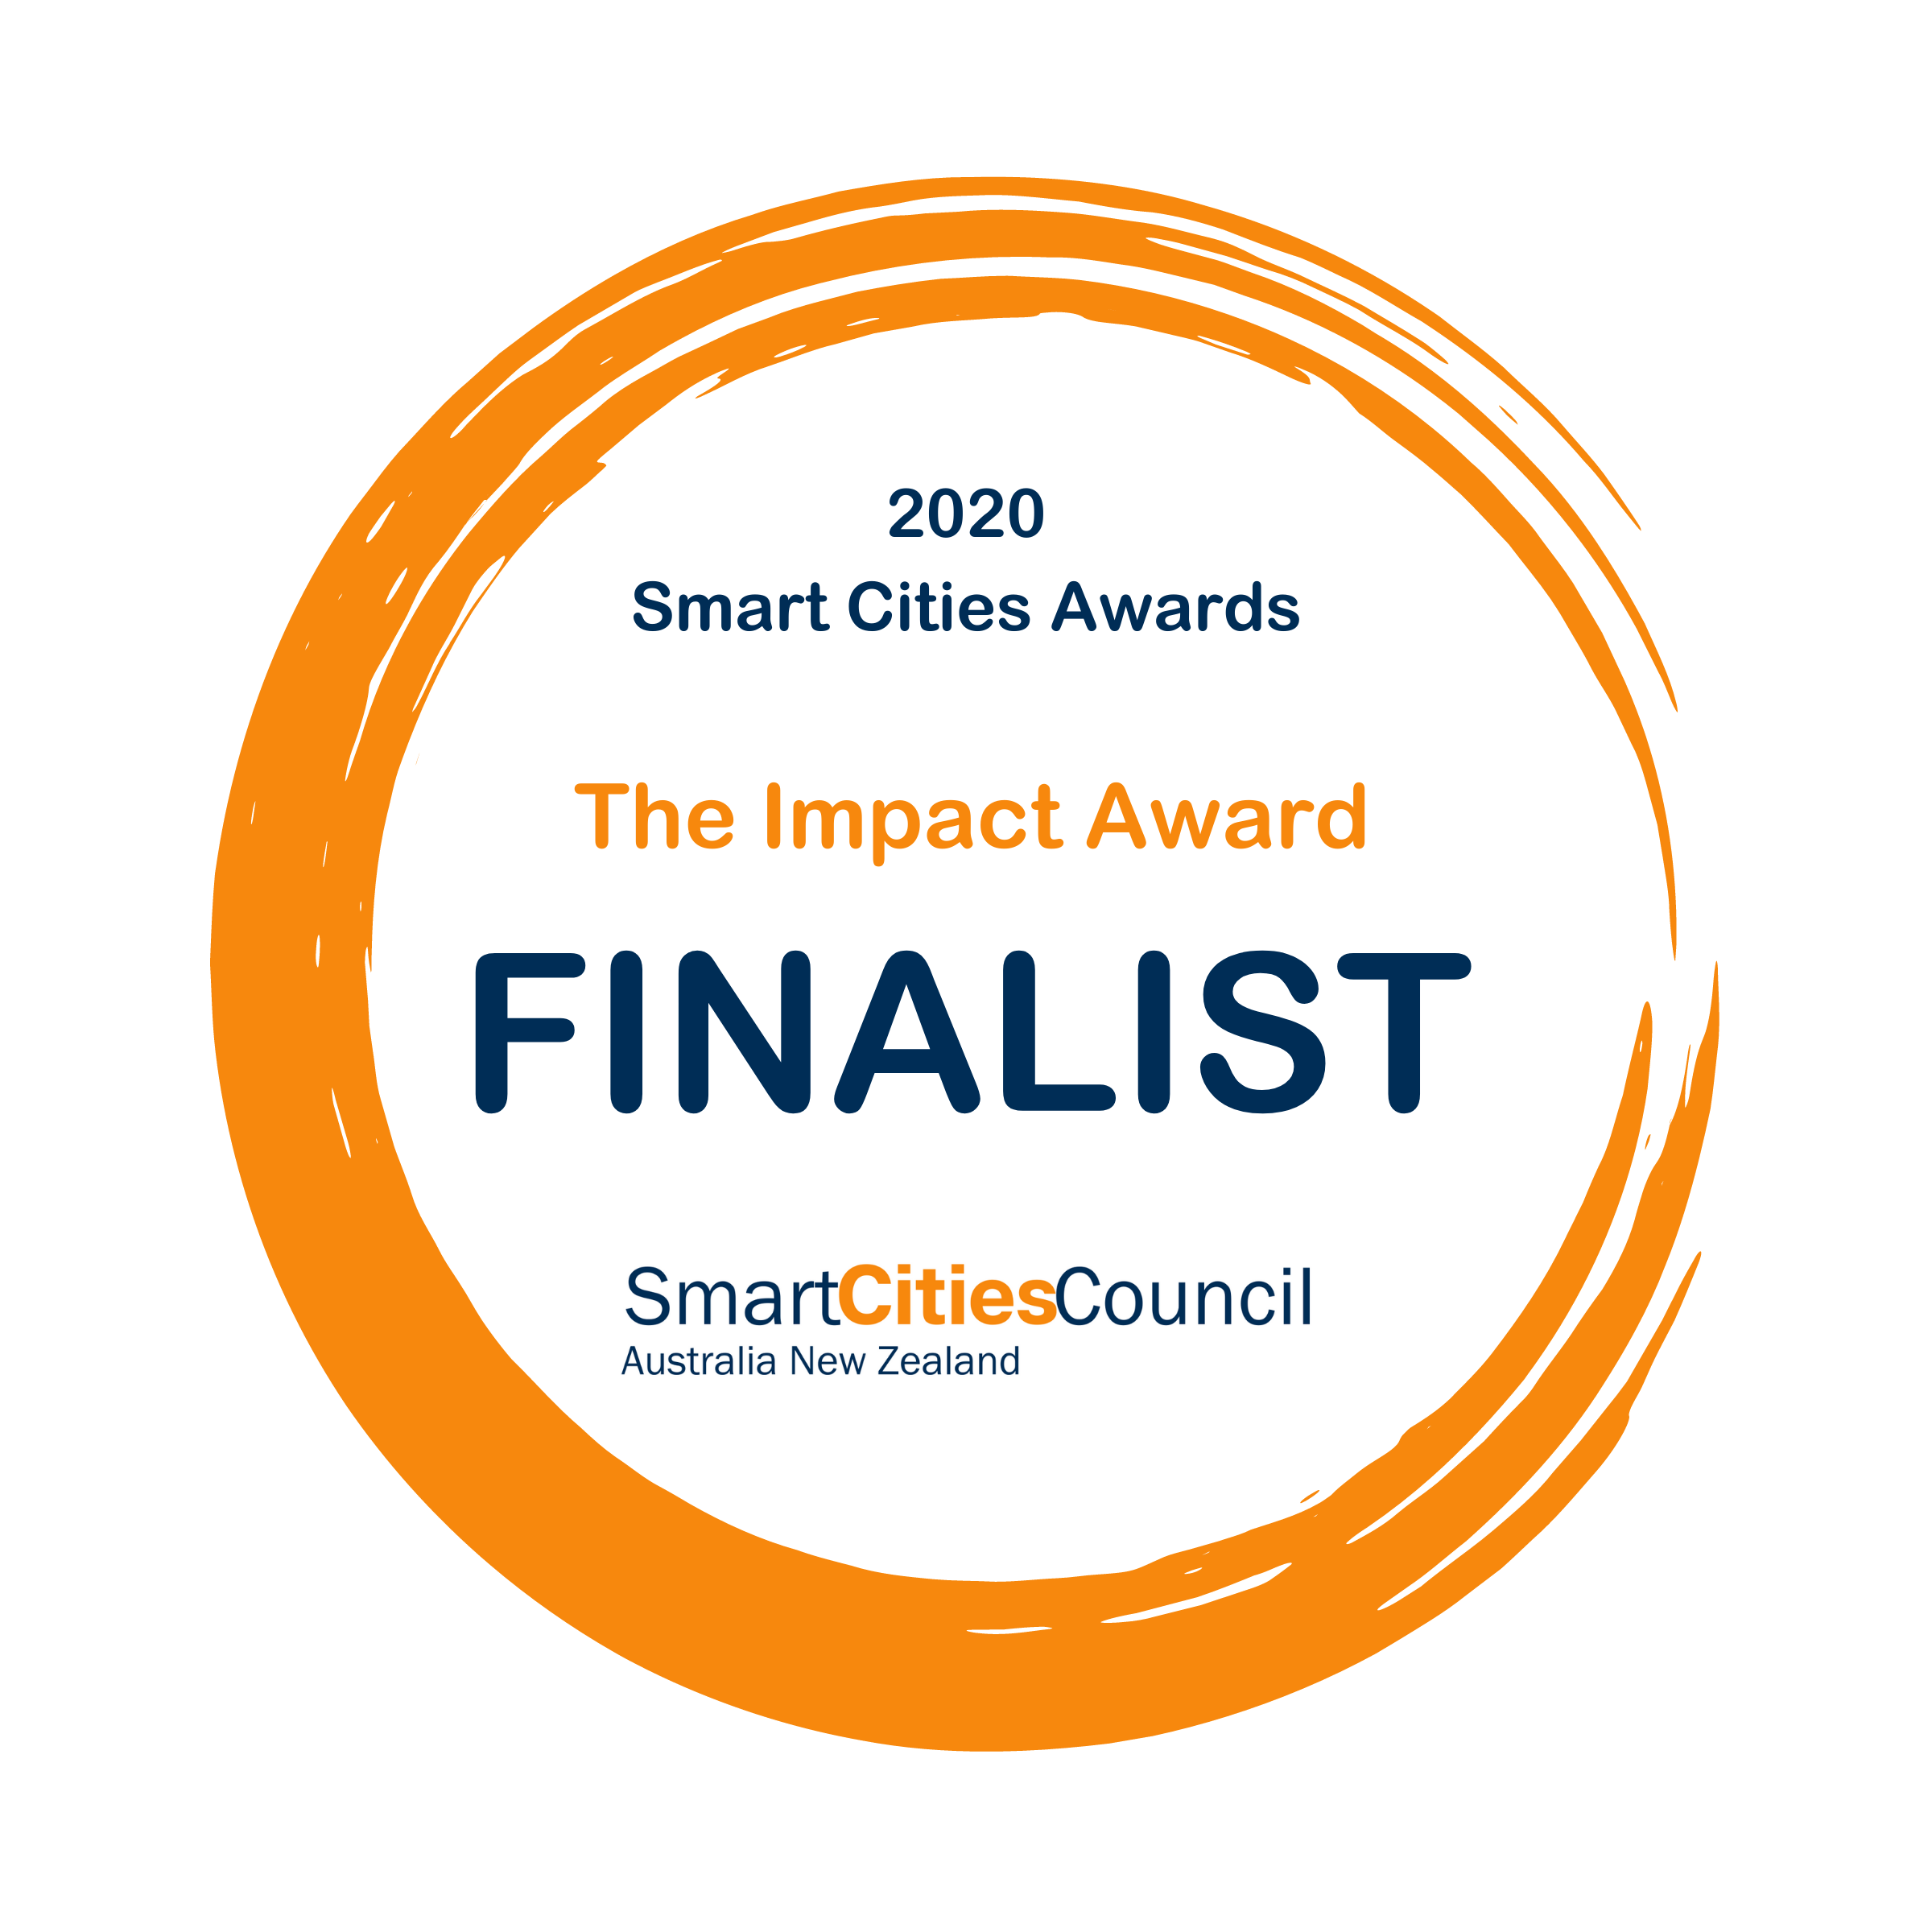 Spot was a finalist for the Smart Cities Impact Award in 2020